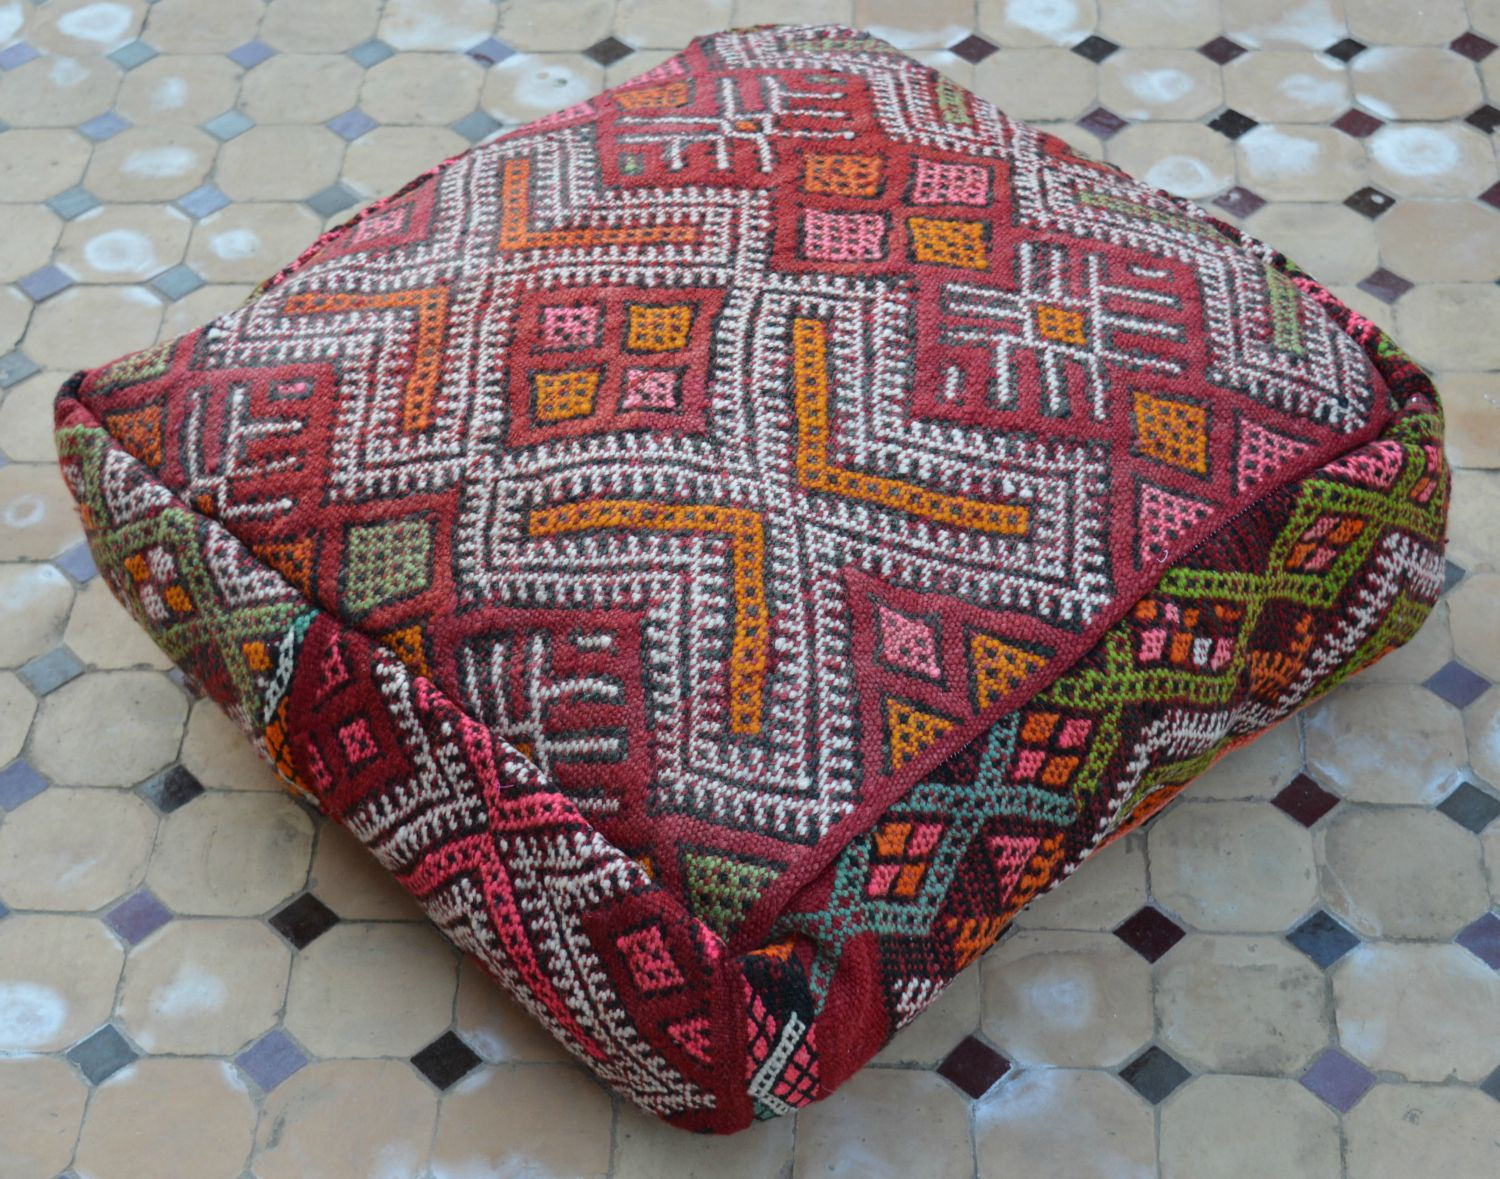 Beyond Marrakech: A Little Moroccan Flair With A Kilim Floor Pillow ...